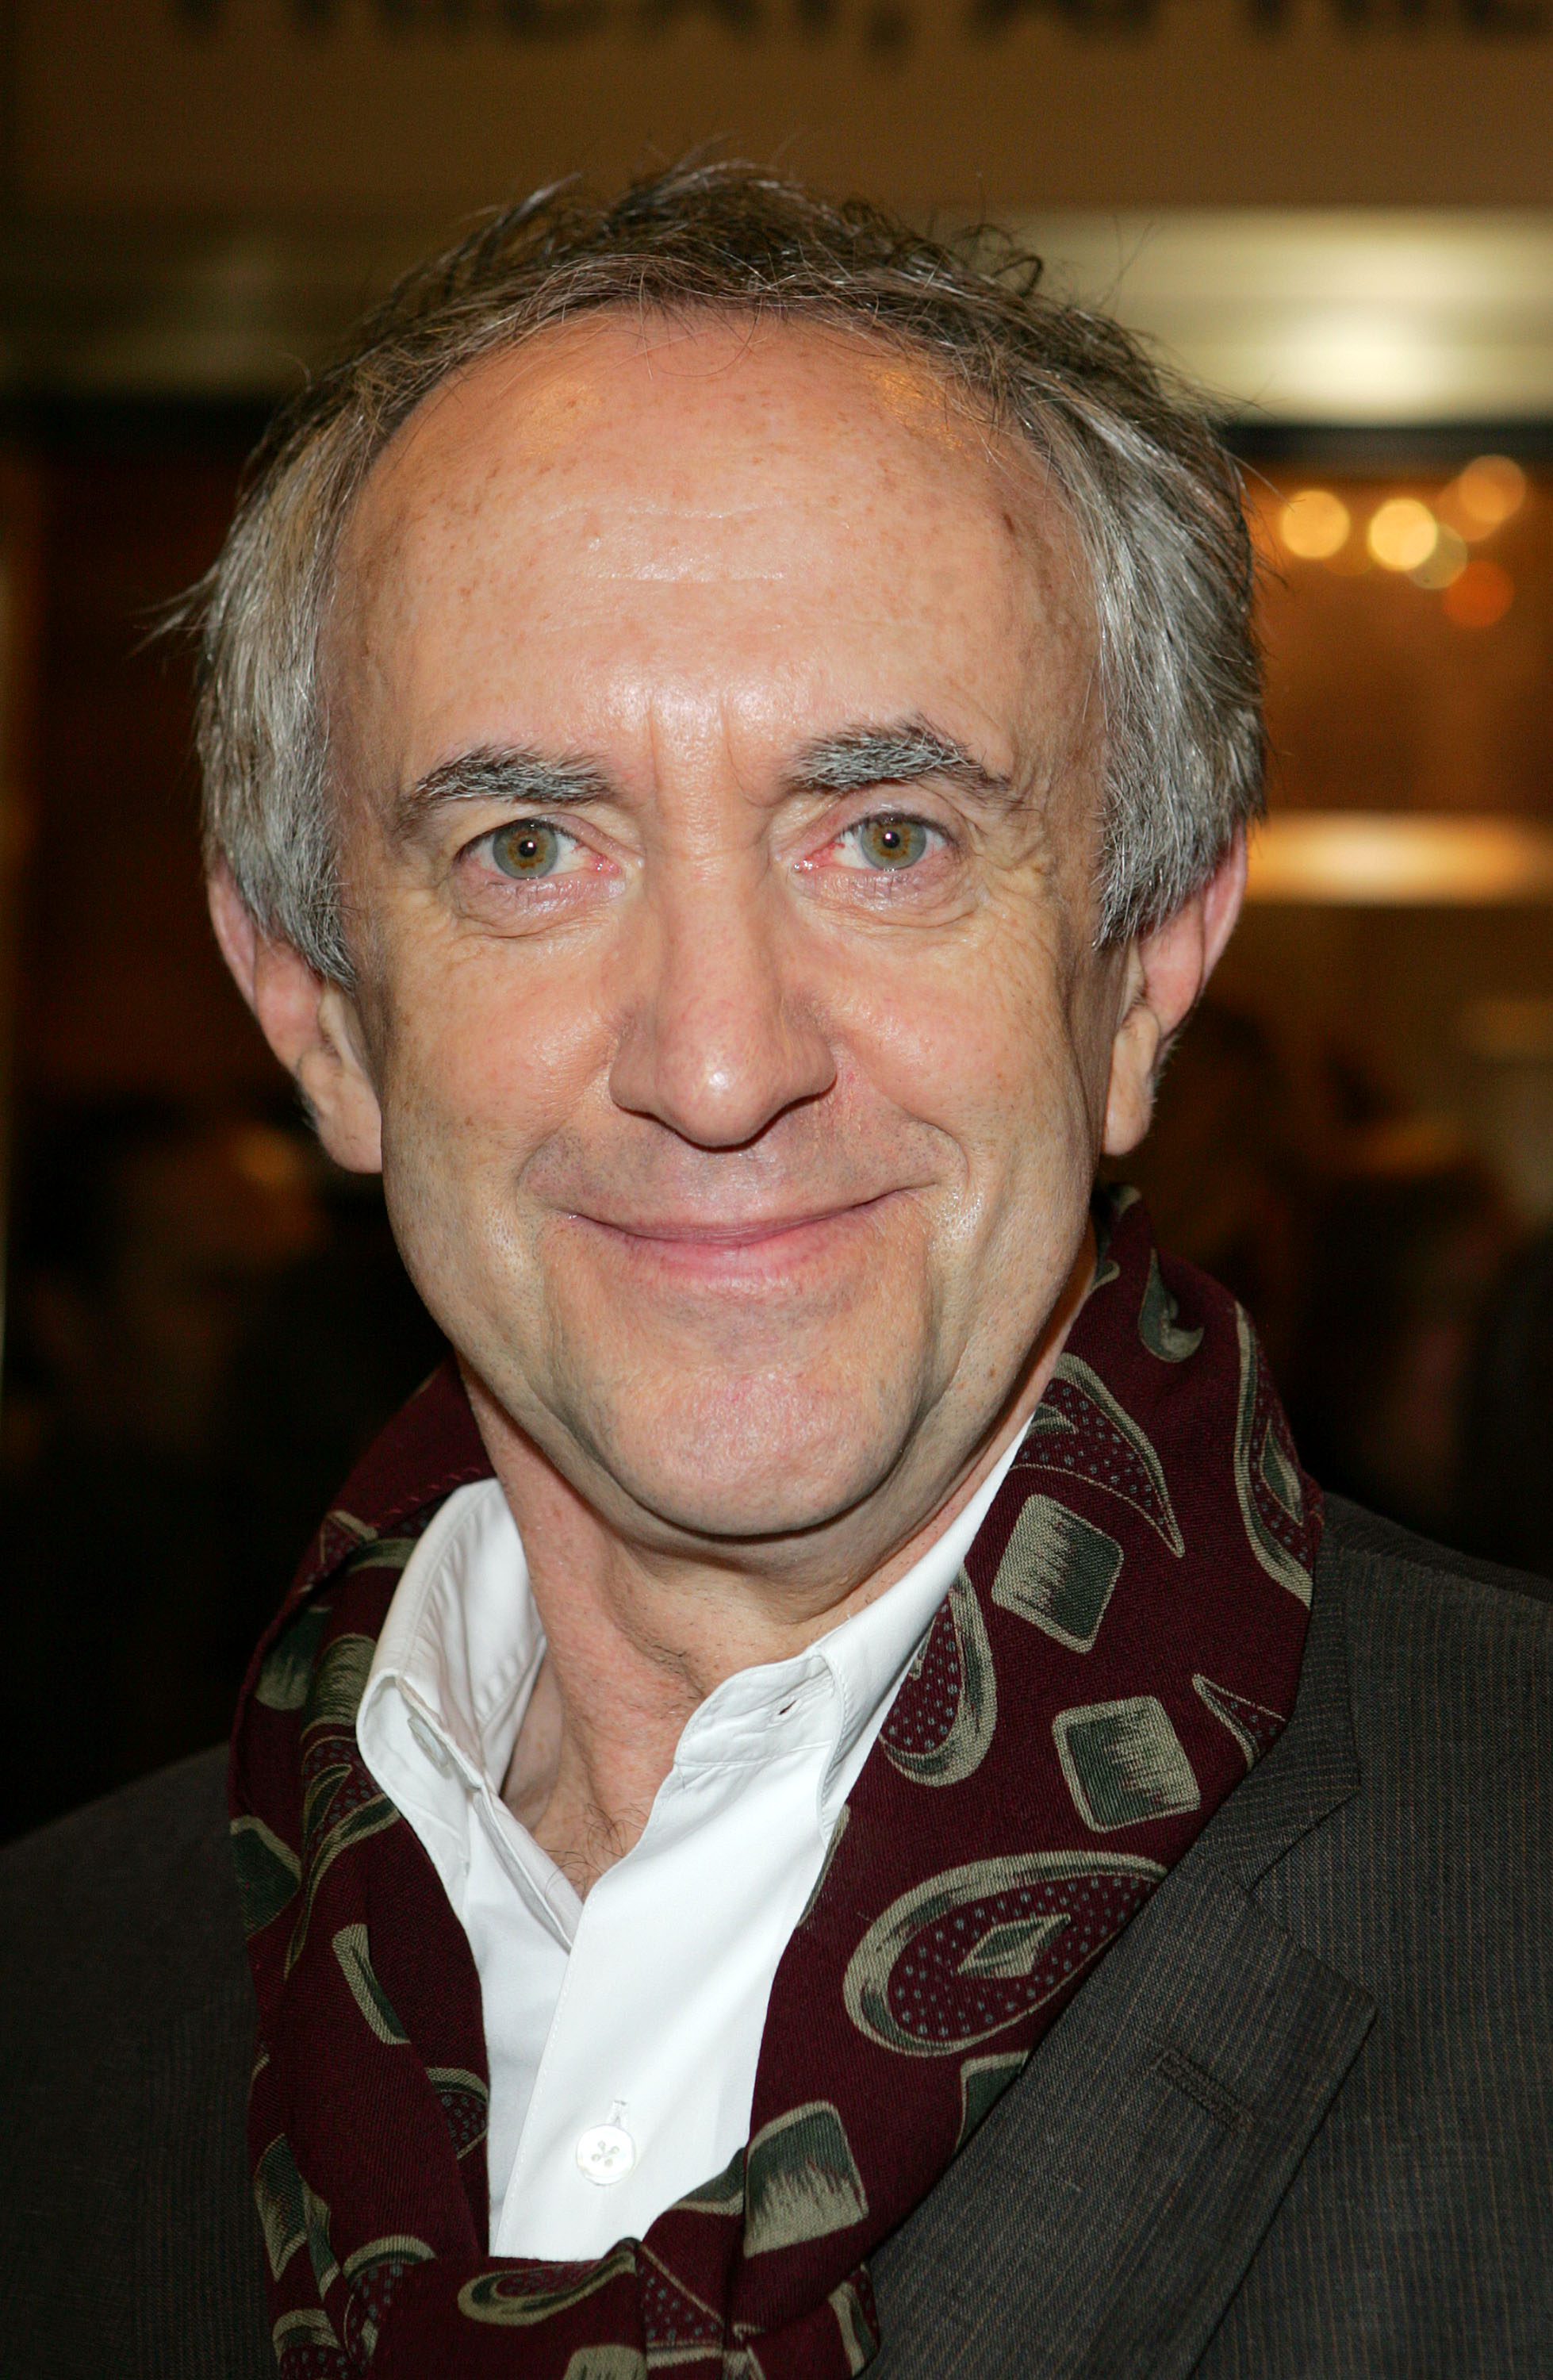 Jonathan Pryce earned a  million dollar salary, leaving the net worth at 7 million in 2017